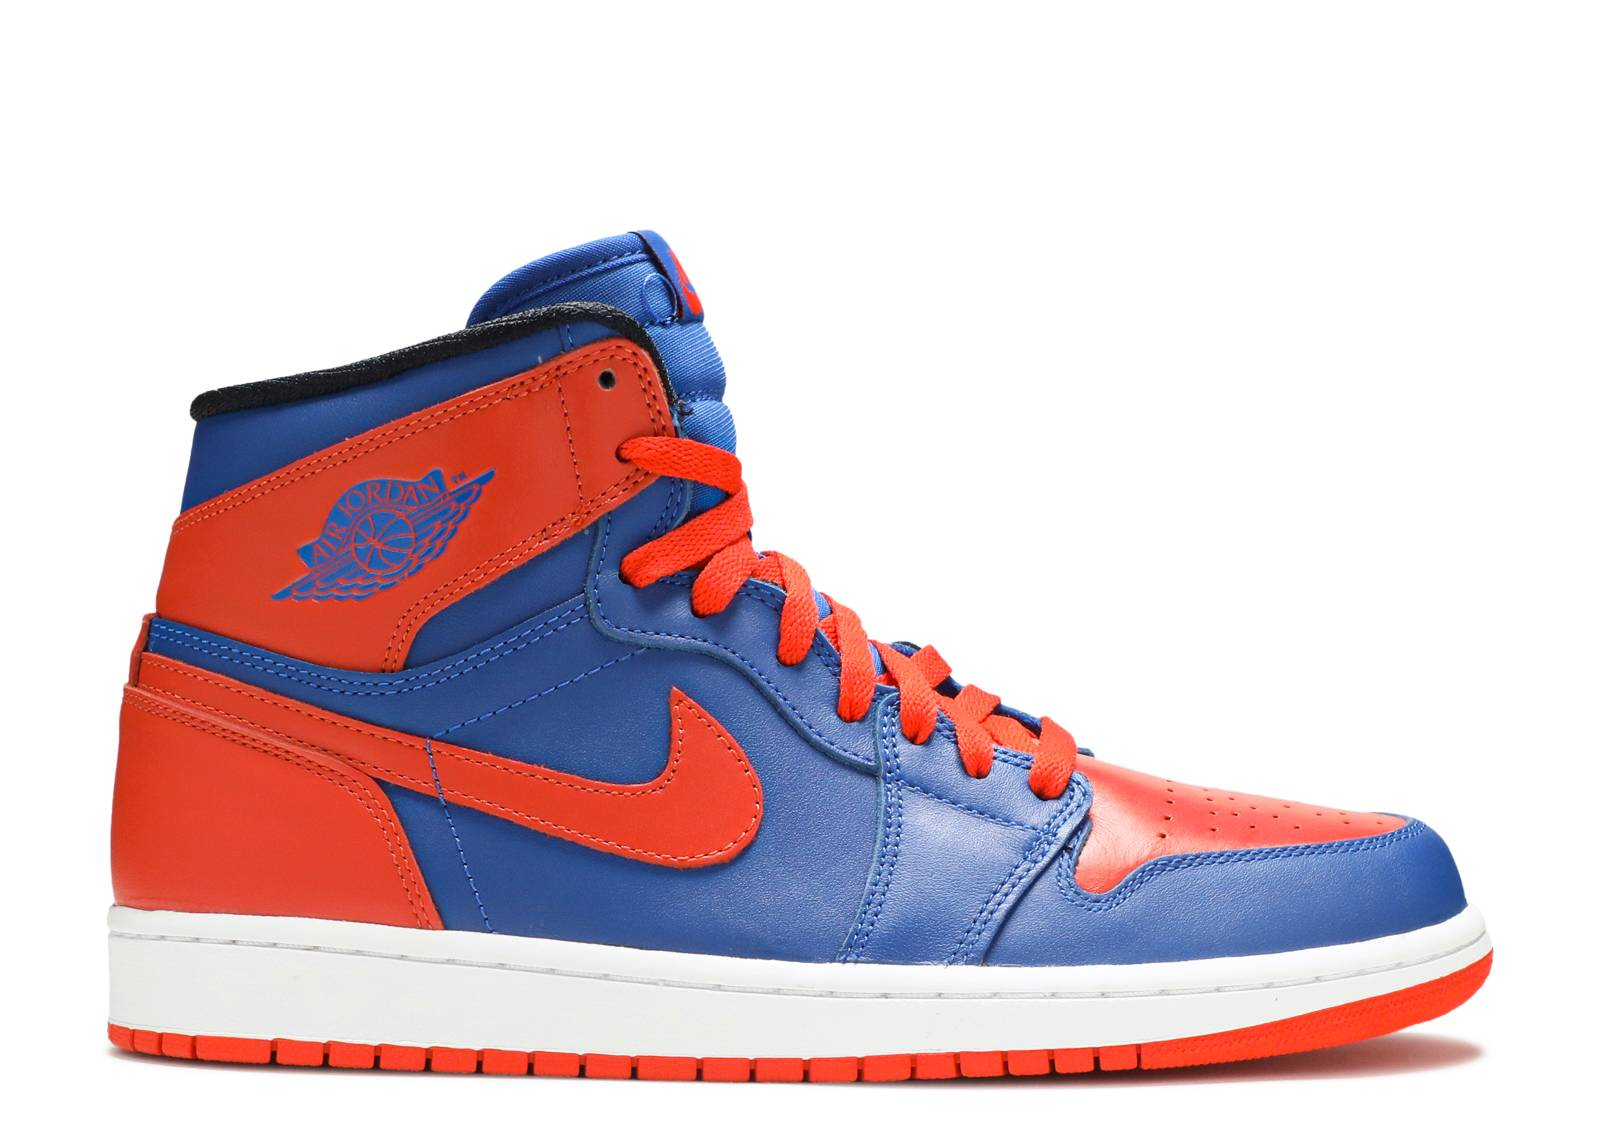 Nike Air Jordan 1 Retro Hi OG New York Knicks Game Blue Orange